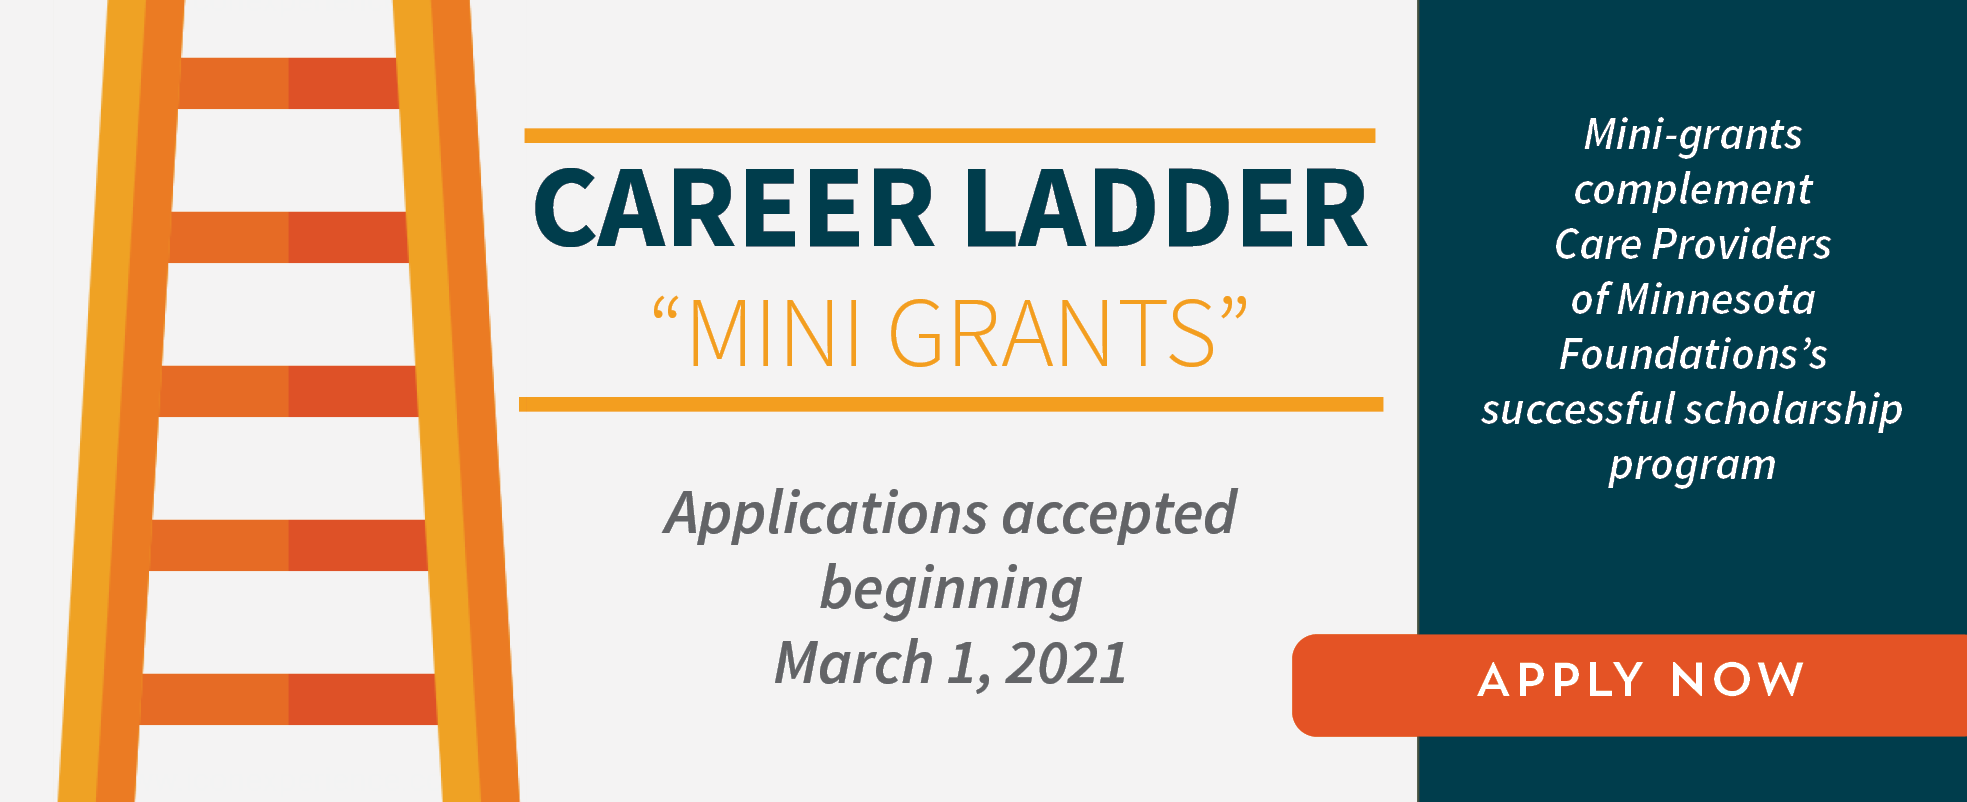 Career Ladder mini-grants